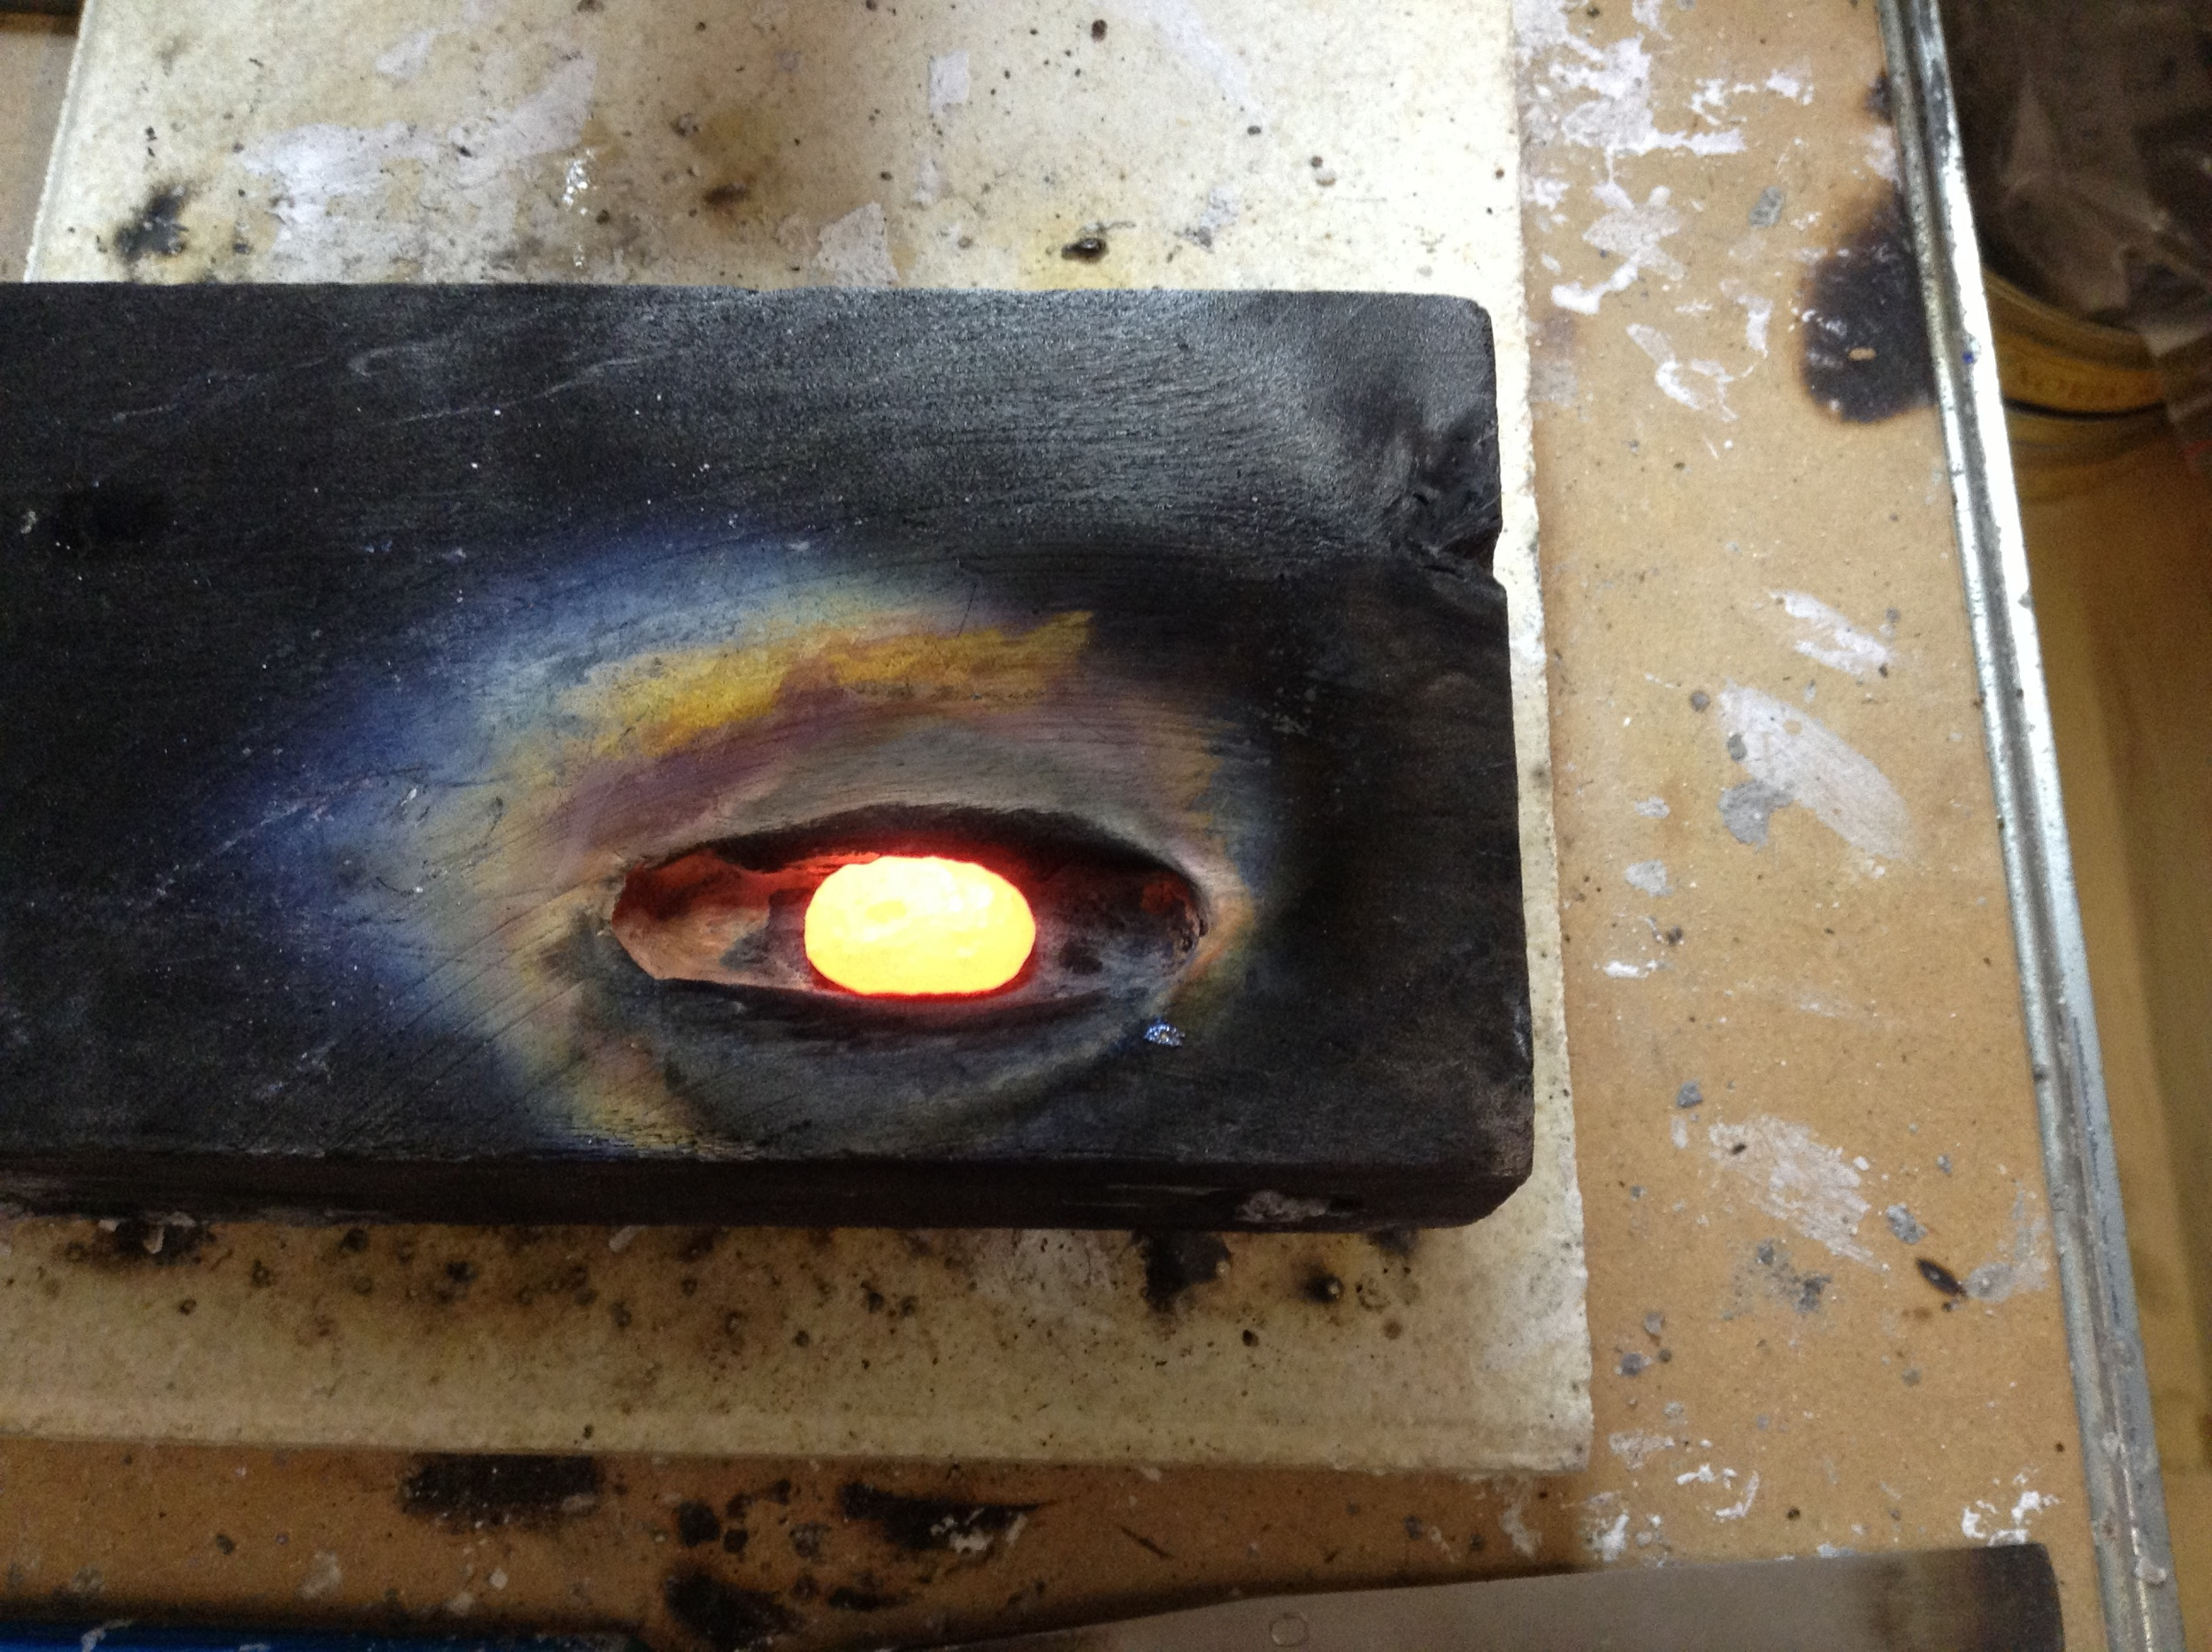 Glowing hot ingot, fresh metal to use made from scrap and offcuts.  Melted into a charcoal block.